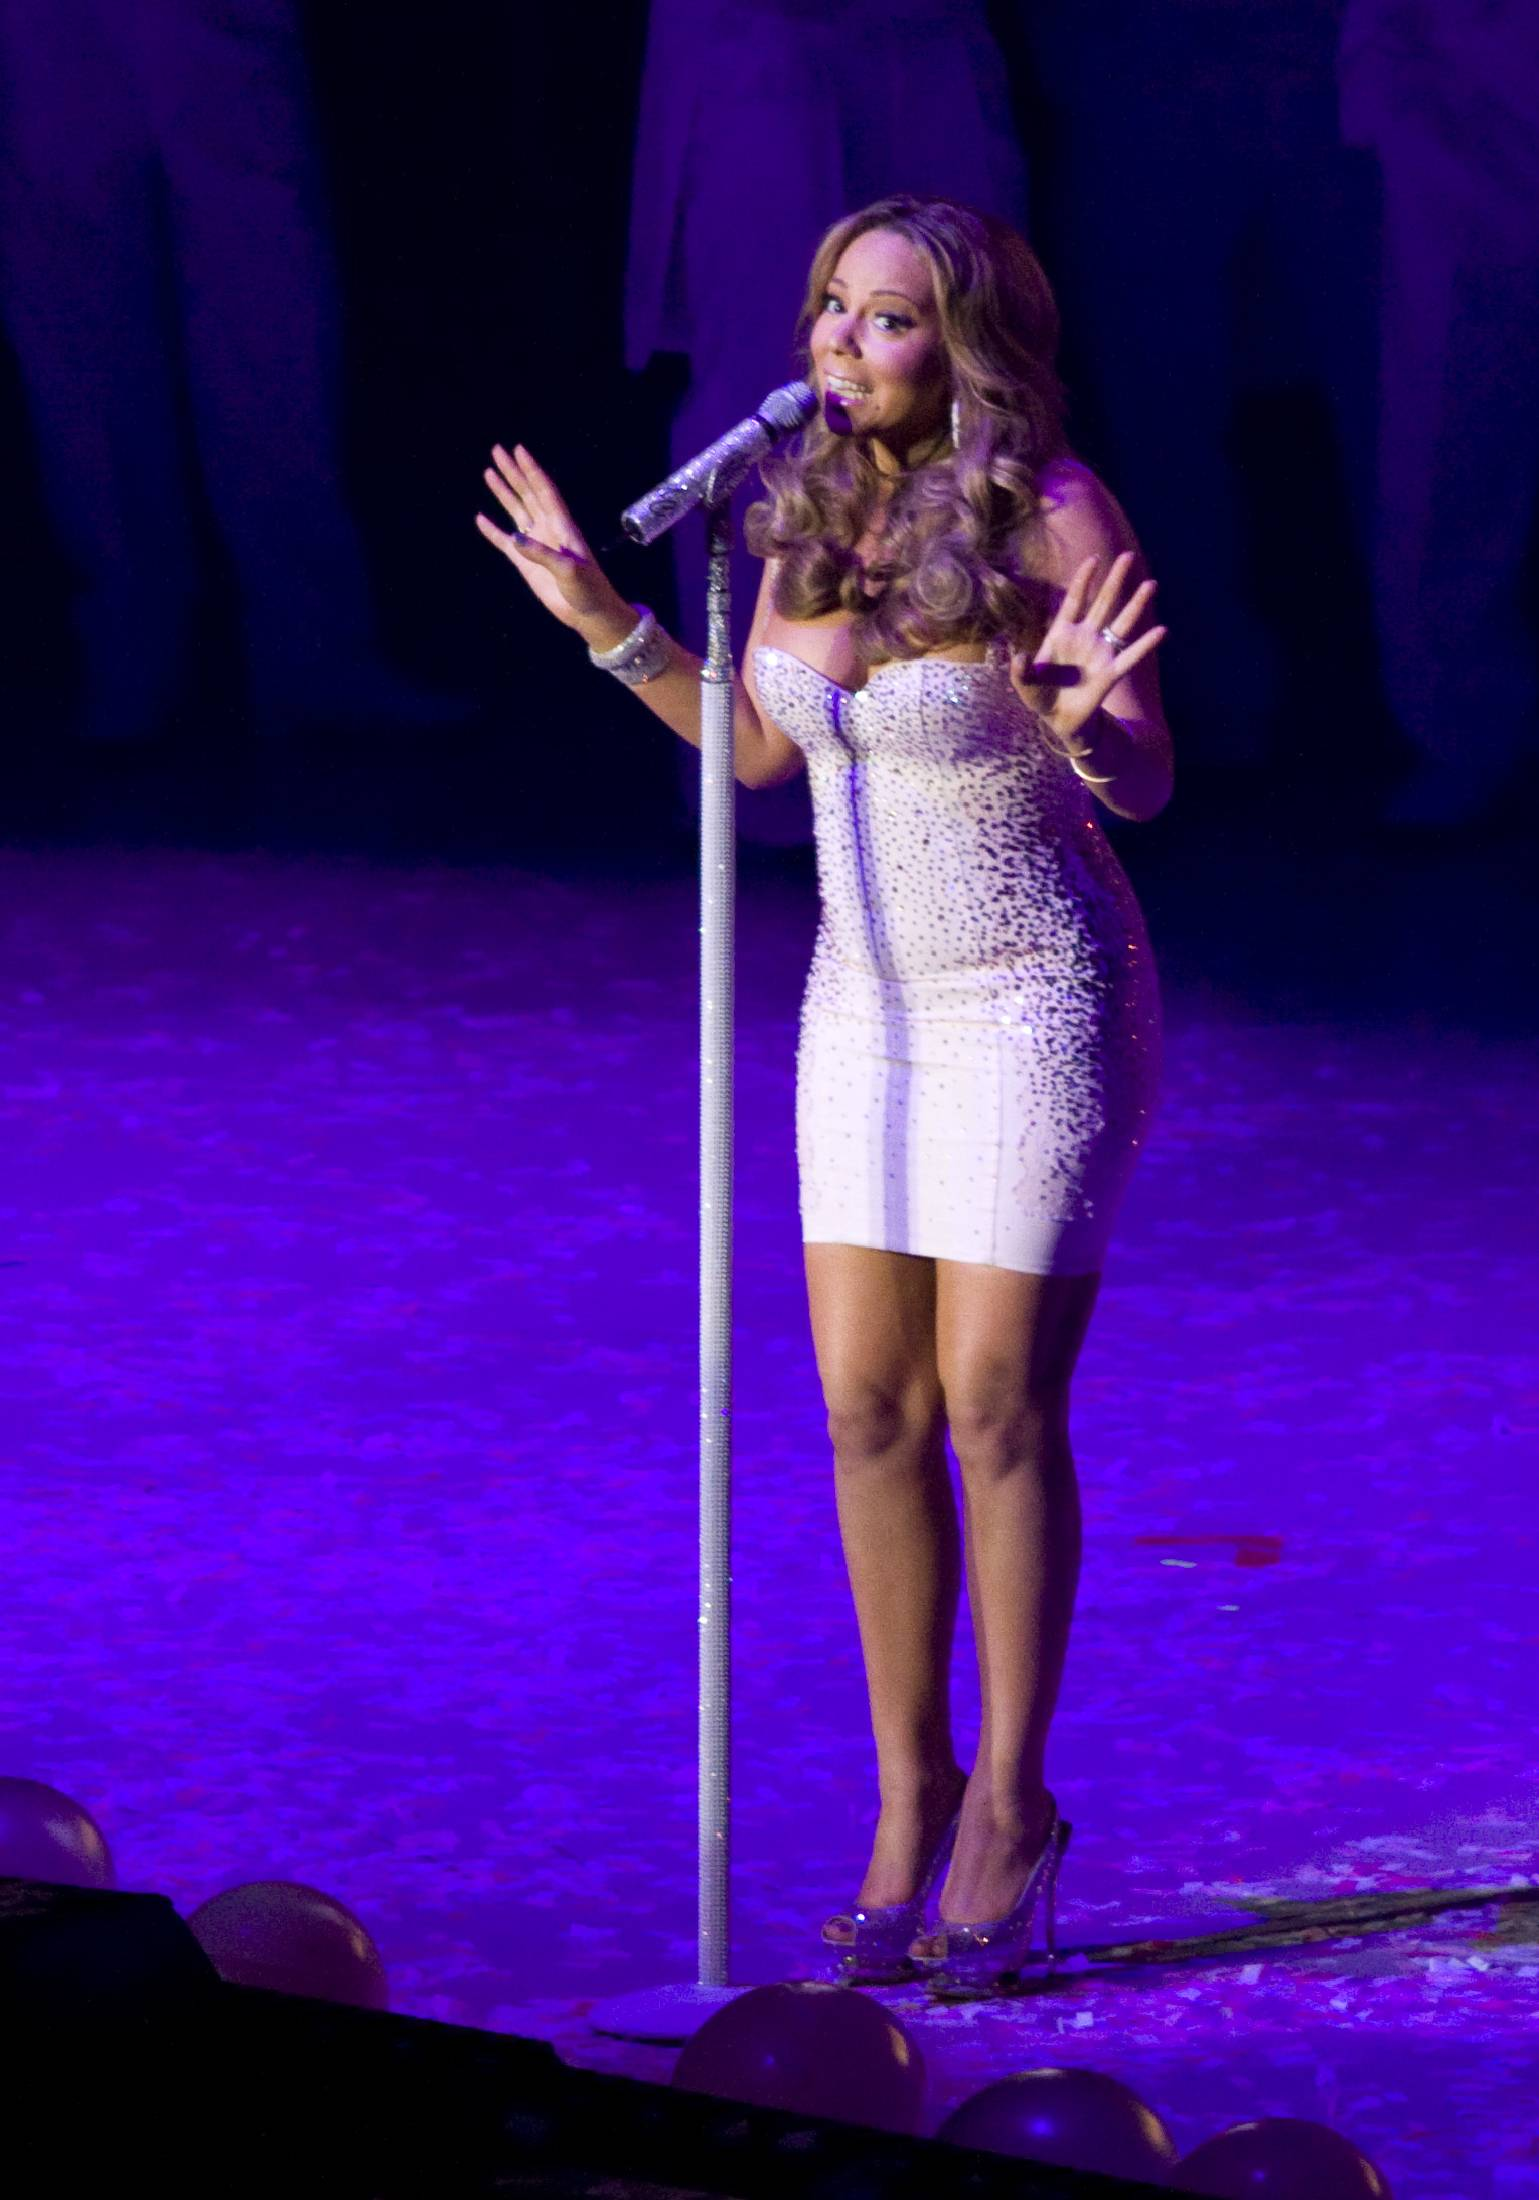 53455_Mariah_Carey_performs_at_Madison_Square_Garden_in_New_York_City-22_122_247lo.jpg